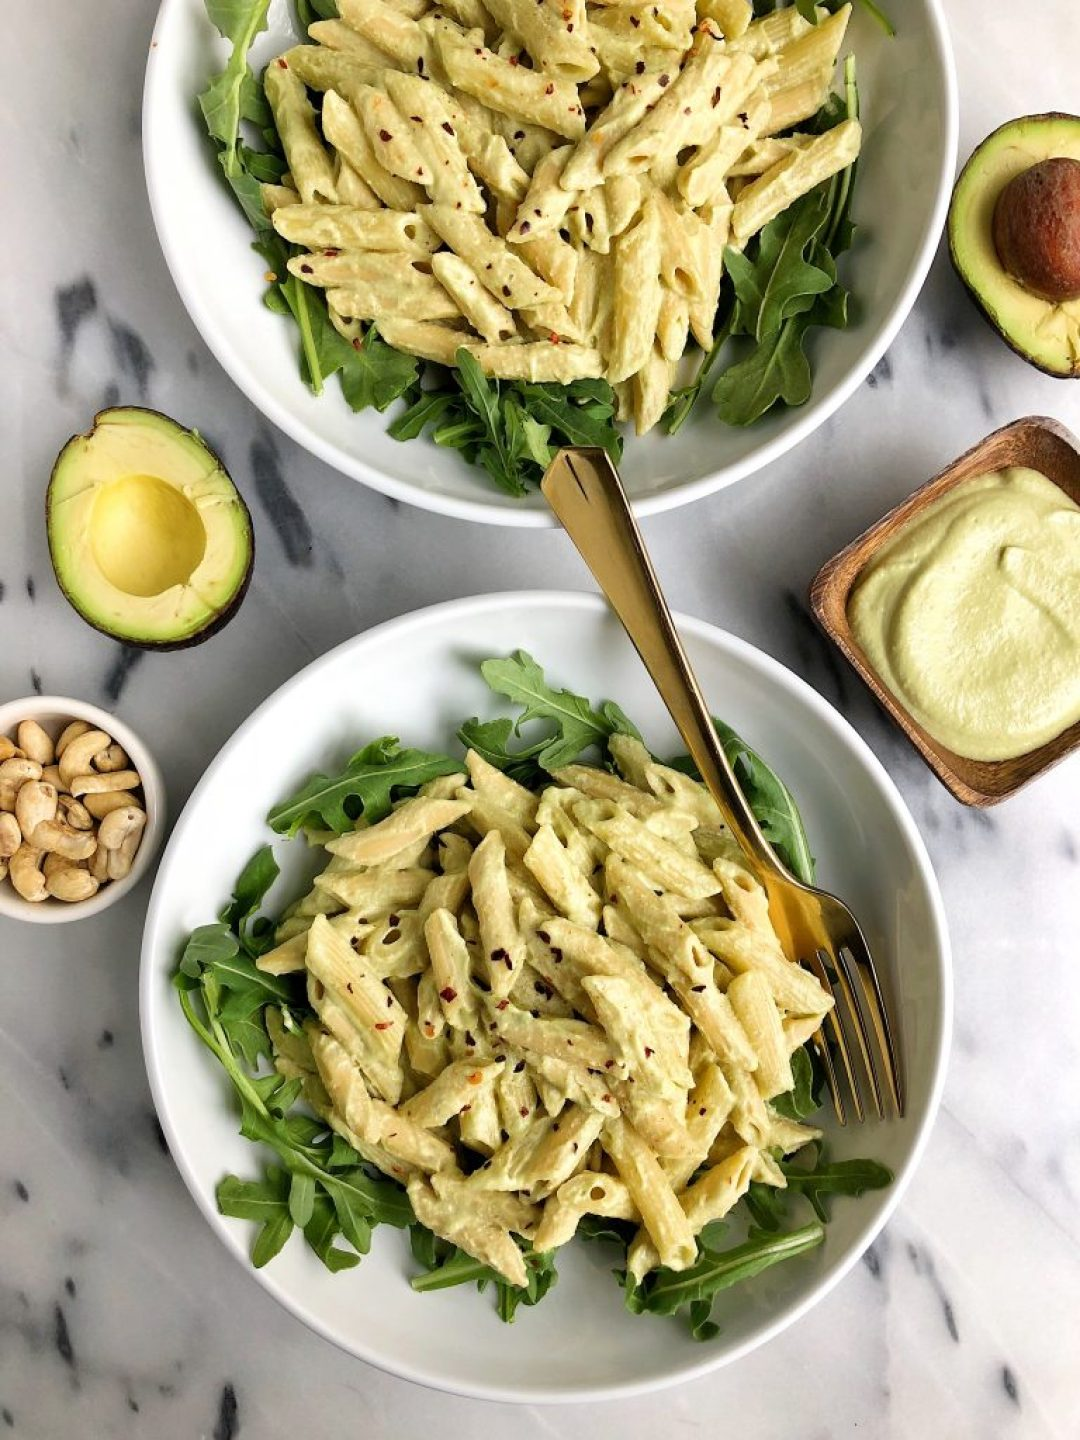 Green Goddess Mac & Cheese made with healthy and simple ingredients including nourishing bone broth, plus there is not dairy or gluten in this dreamy mac & cheese!